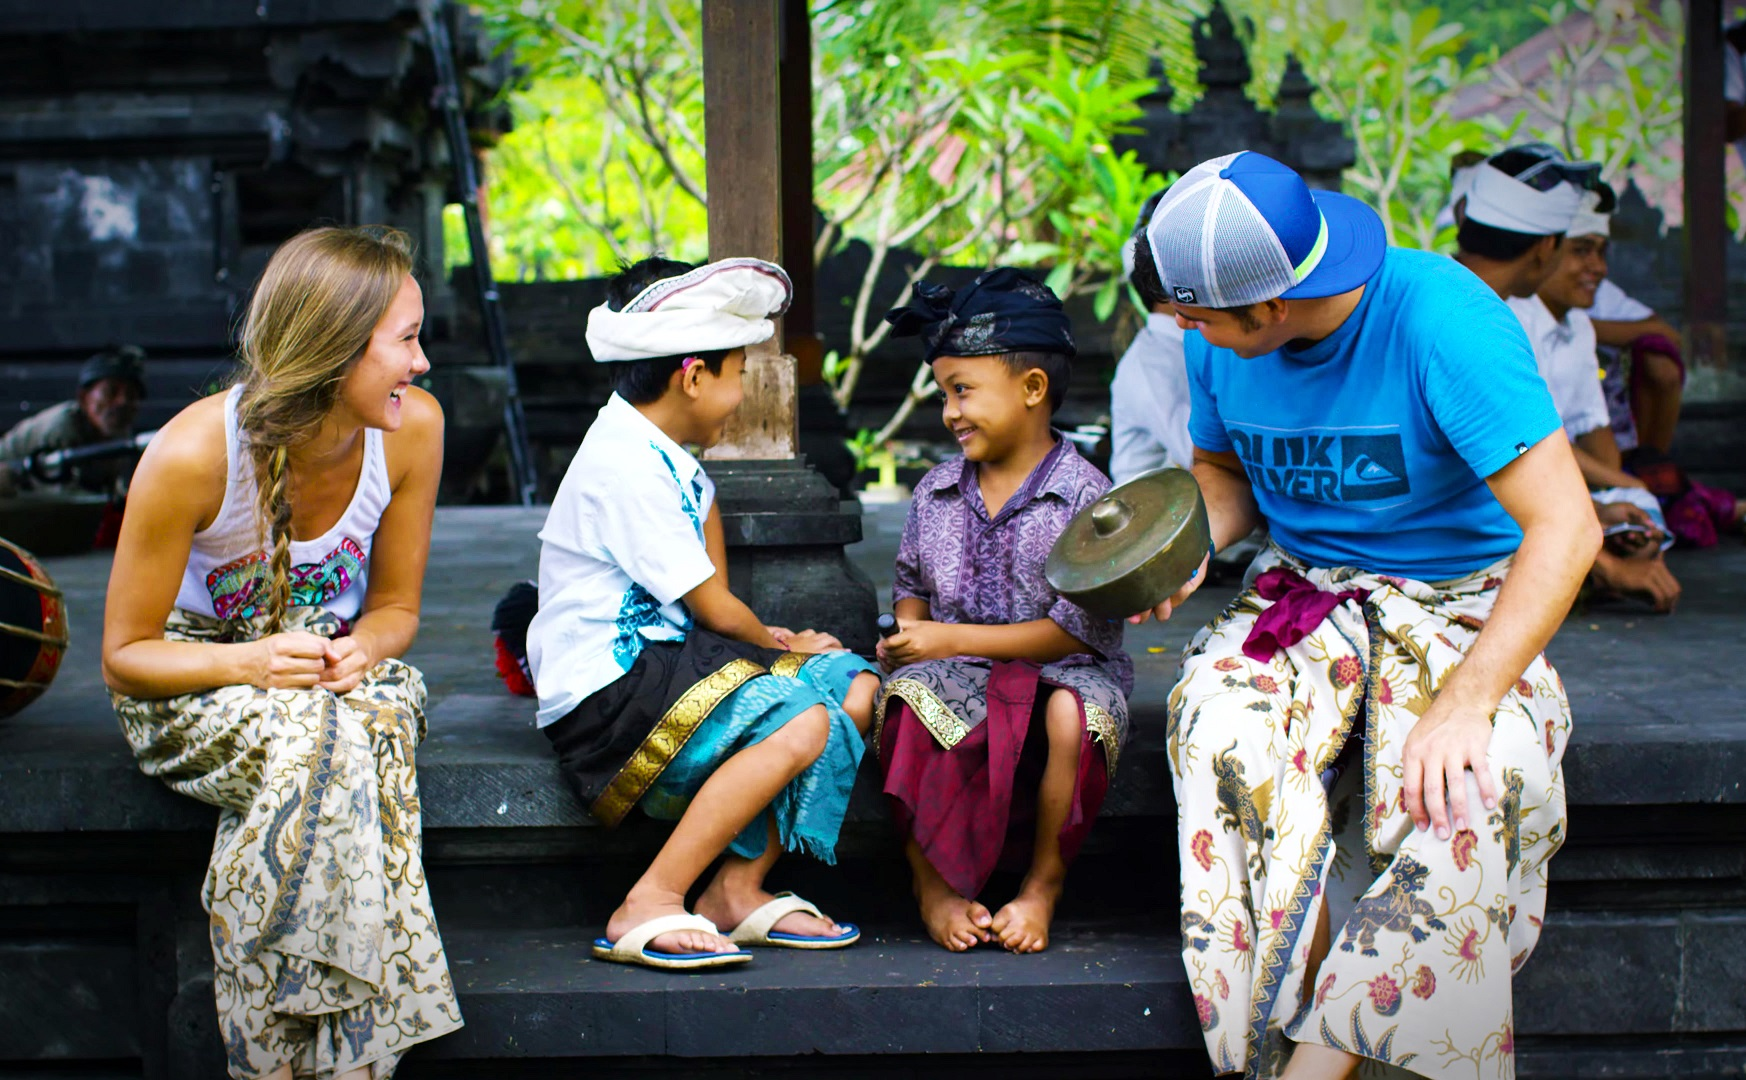 taking part in local residents activities in balinese village